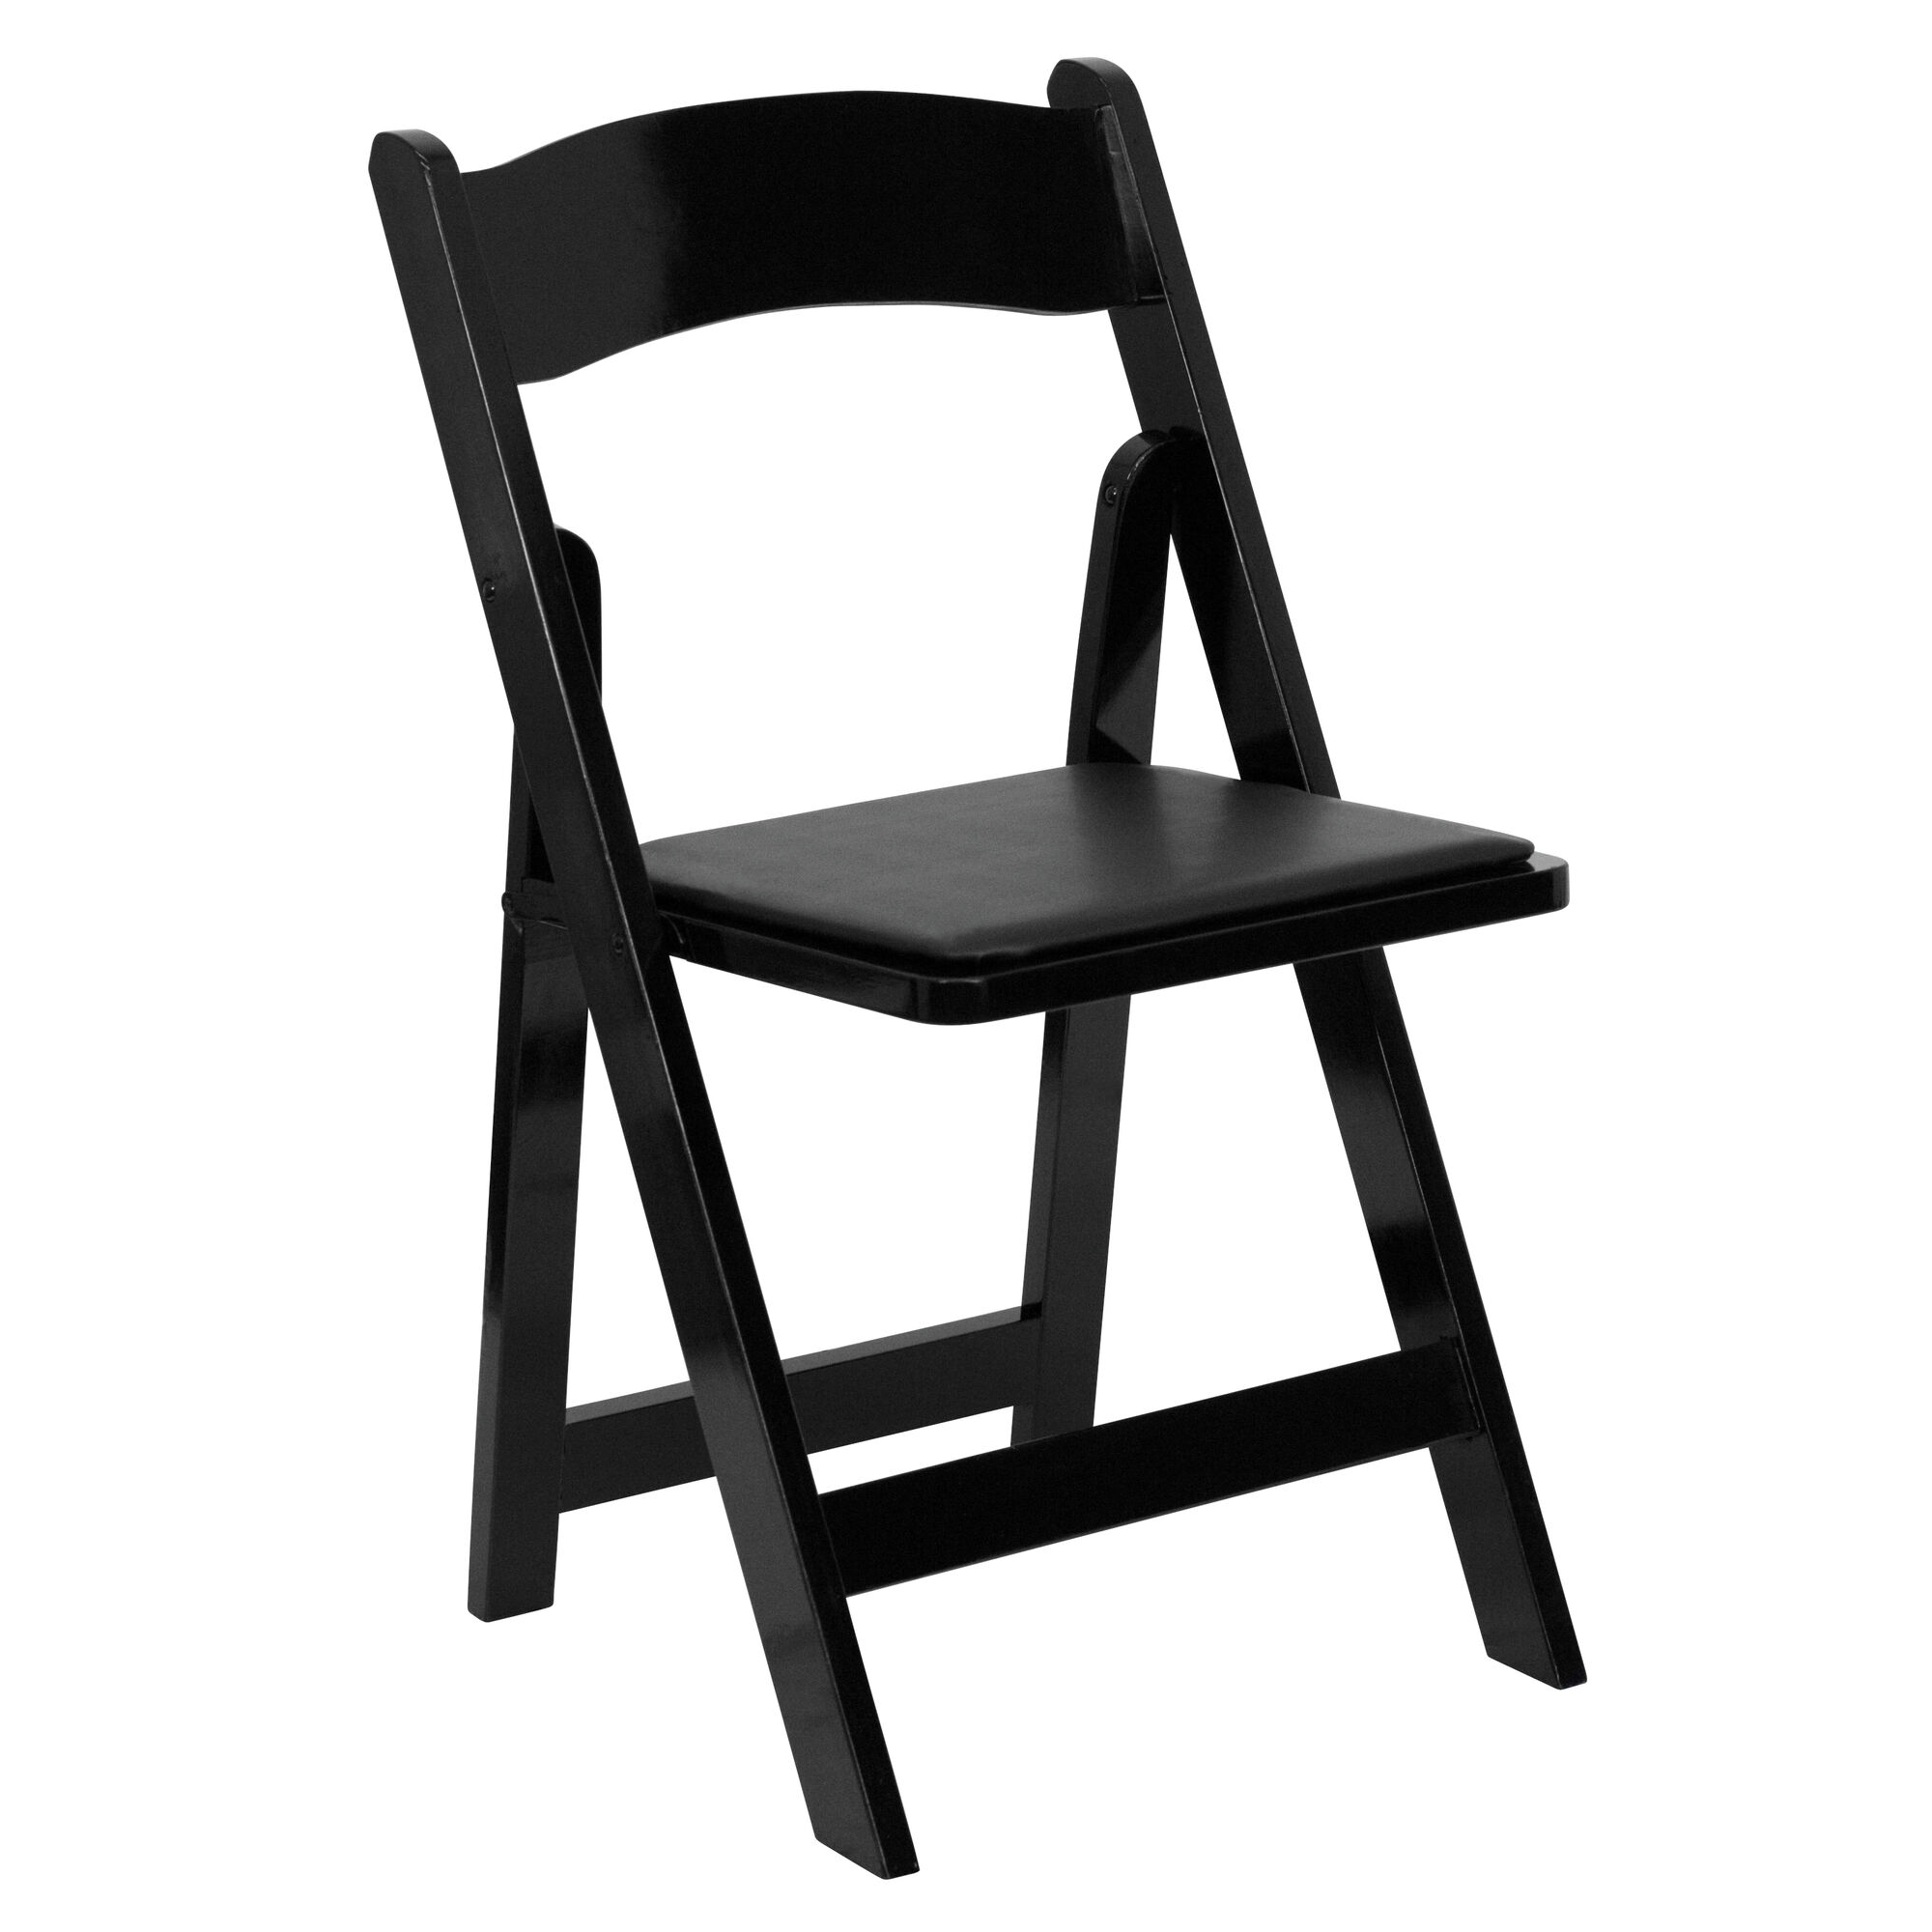 Outstanding Hercules Series Black Wood Folding Chair With Vinyl Padded Seat Pabps2019 Chair Design Images Pabps2019Com